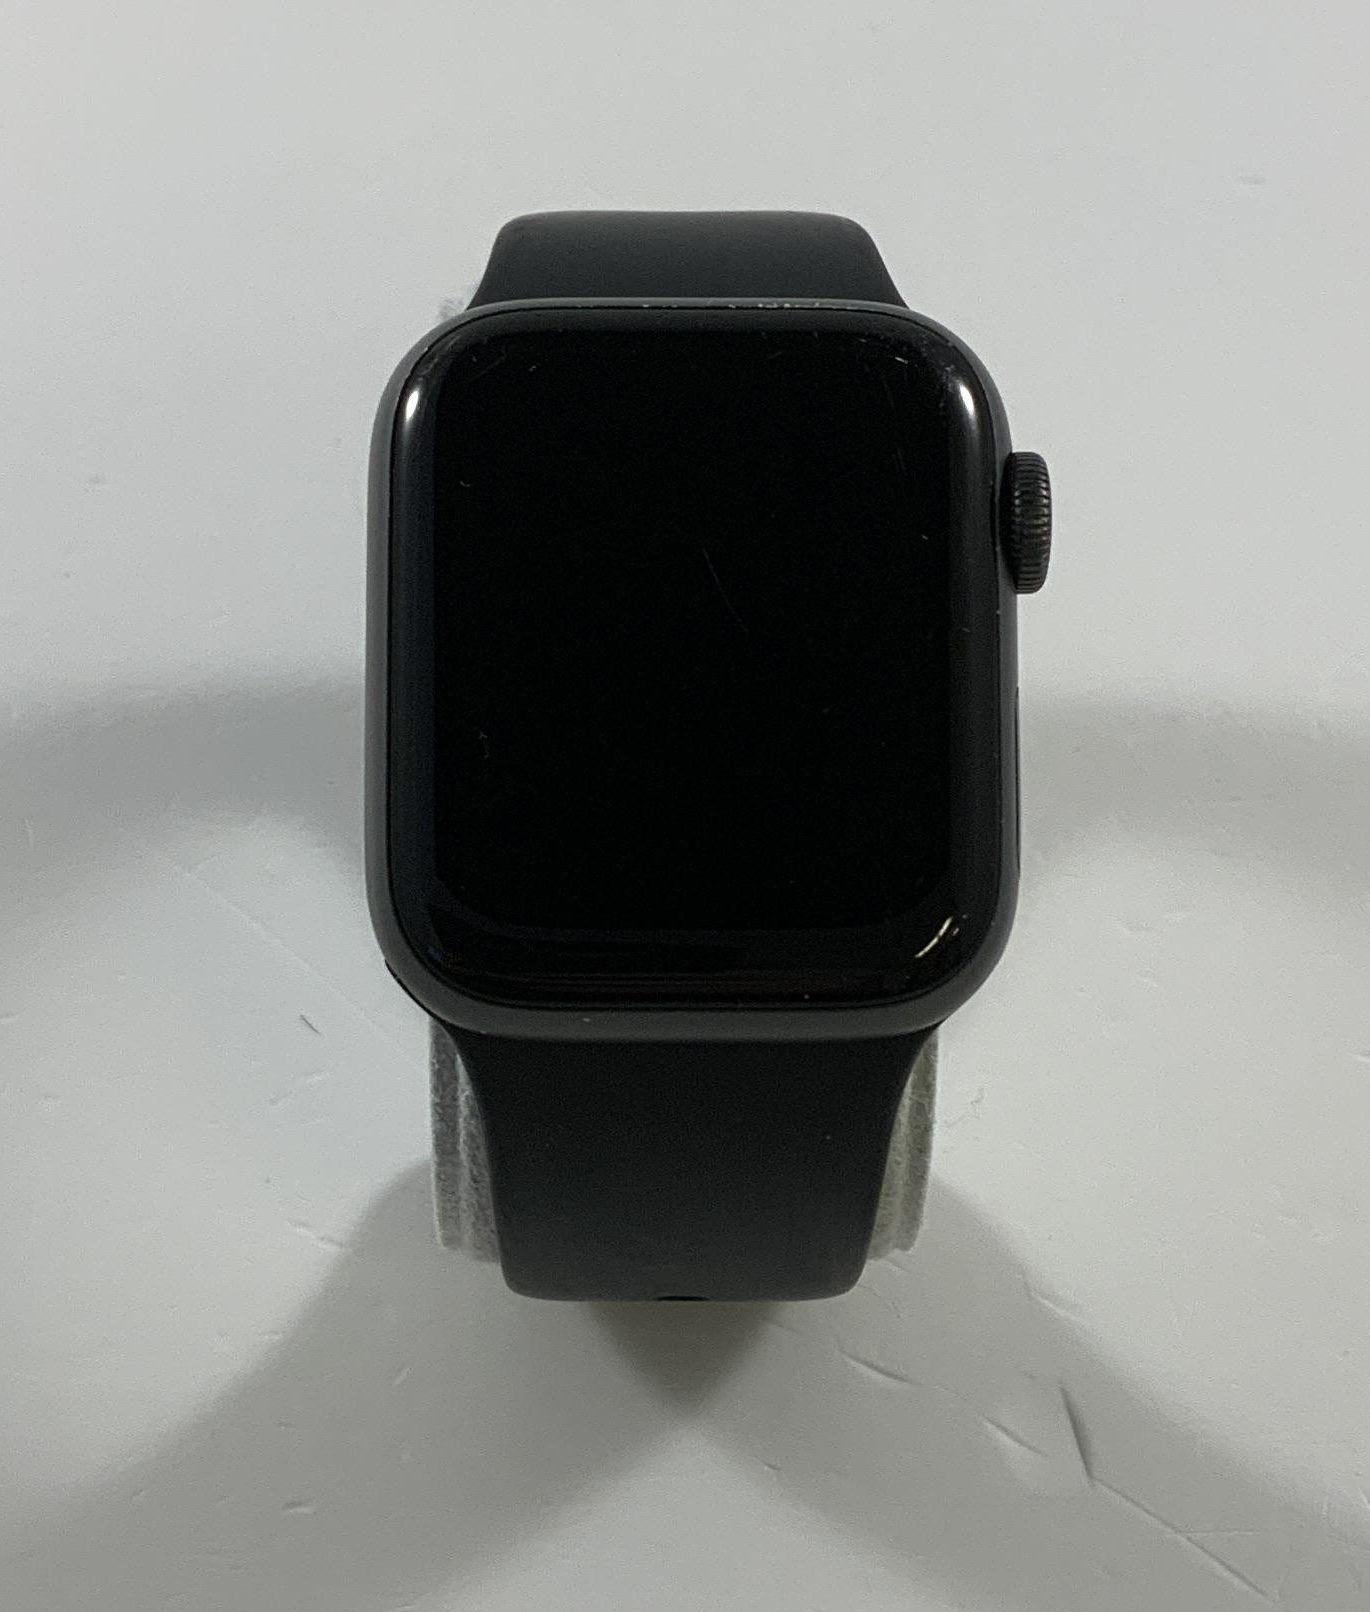 Watch Series 4 Aluminum Cellular (40mm), Space Gray, Black Sport Band, obraz 1